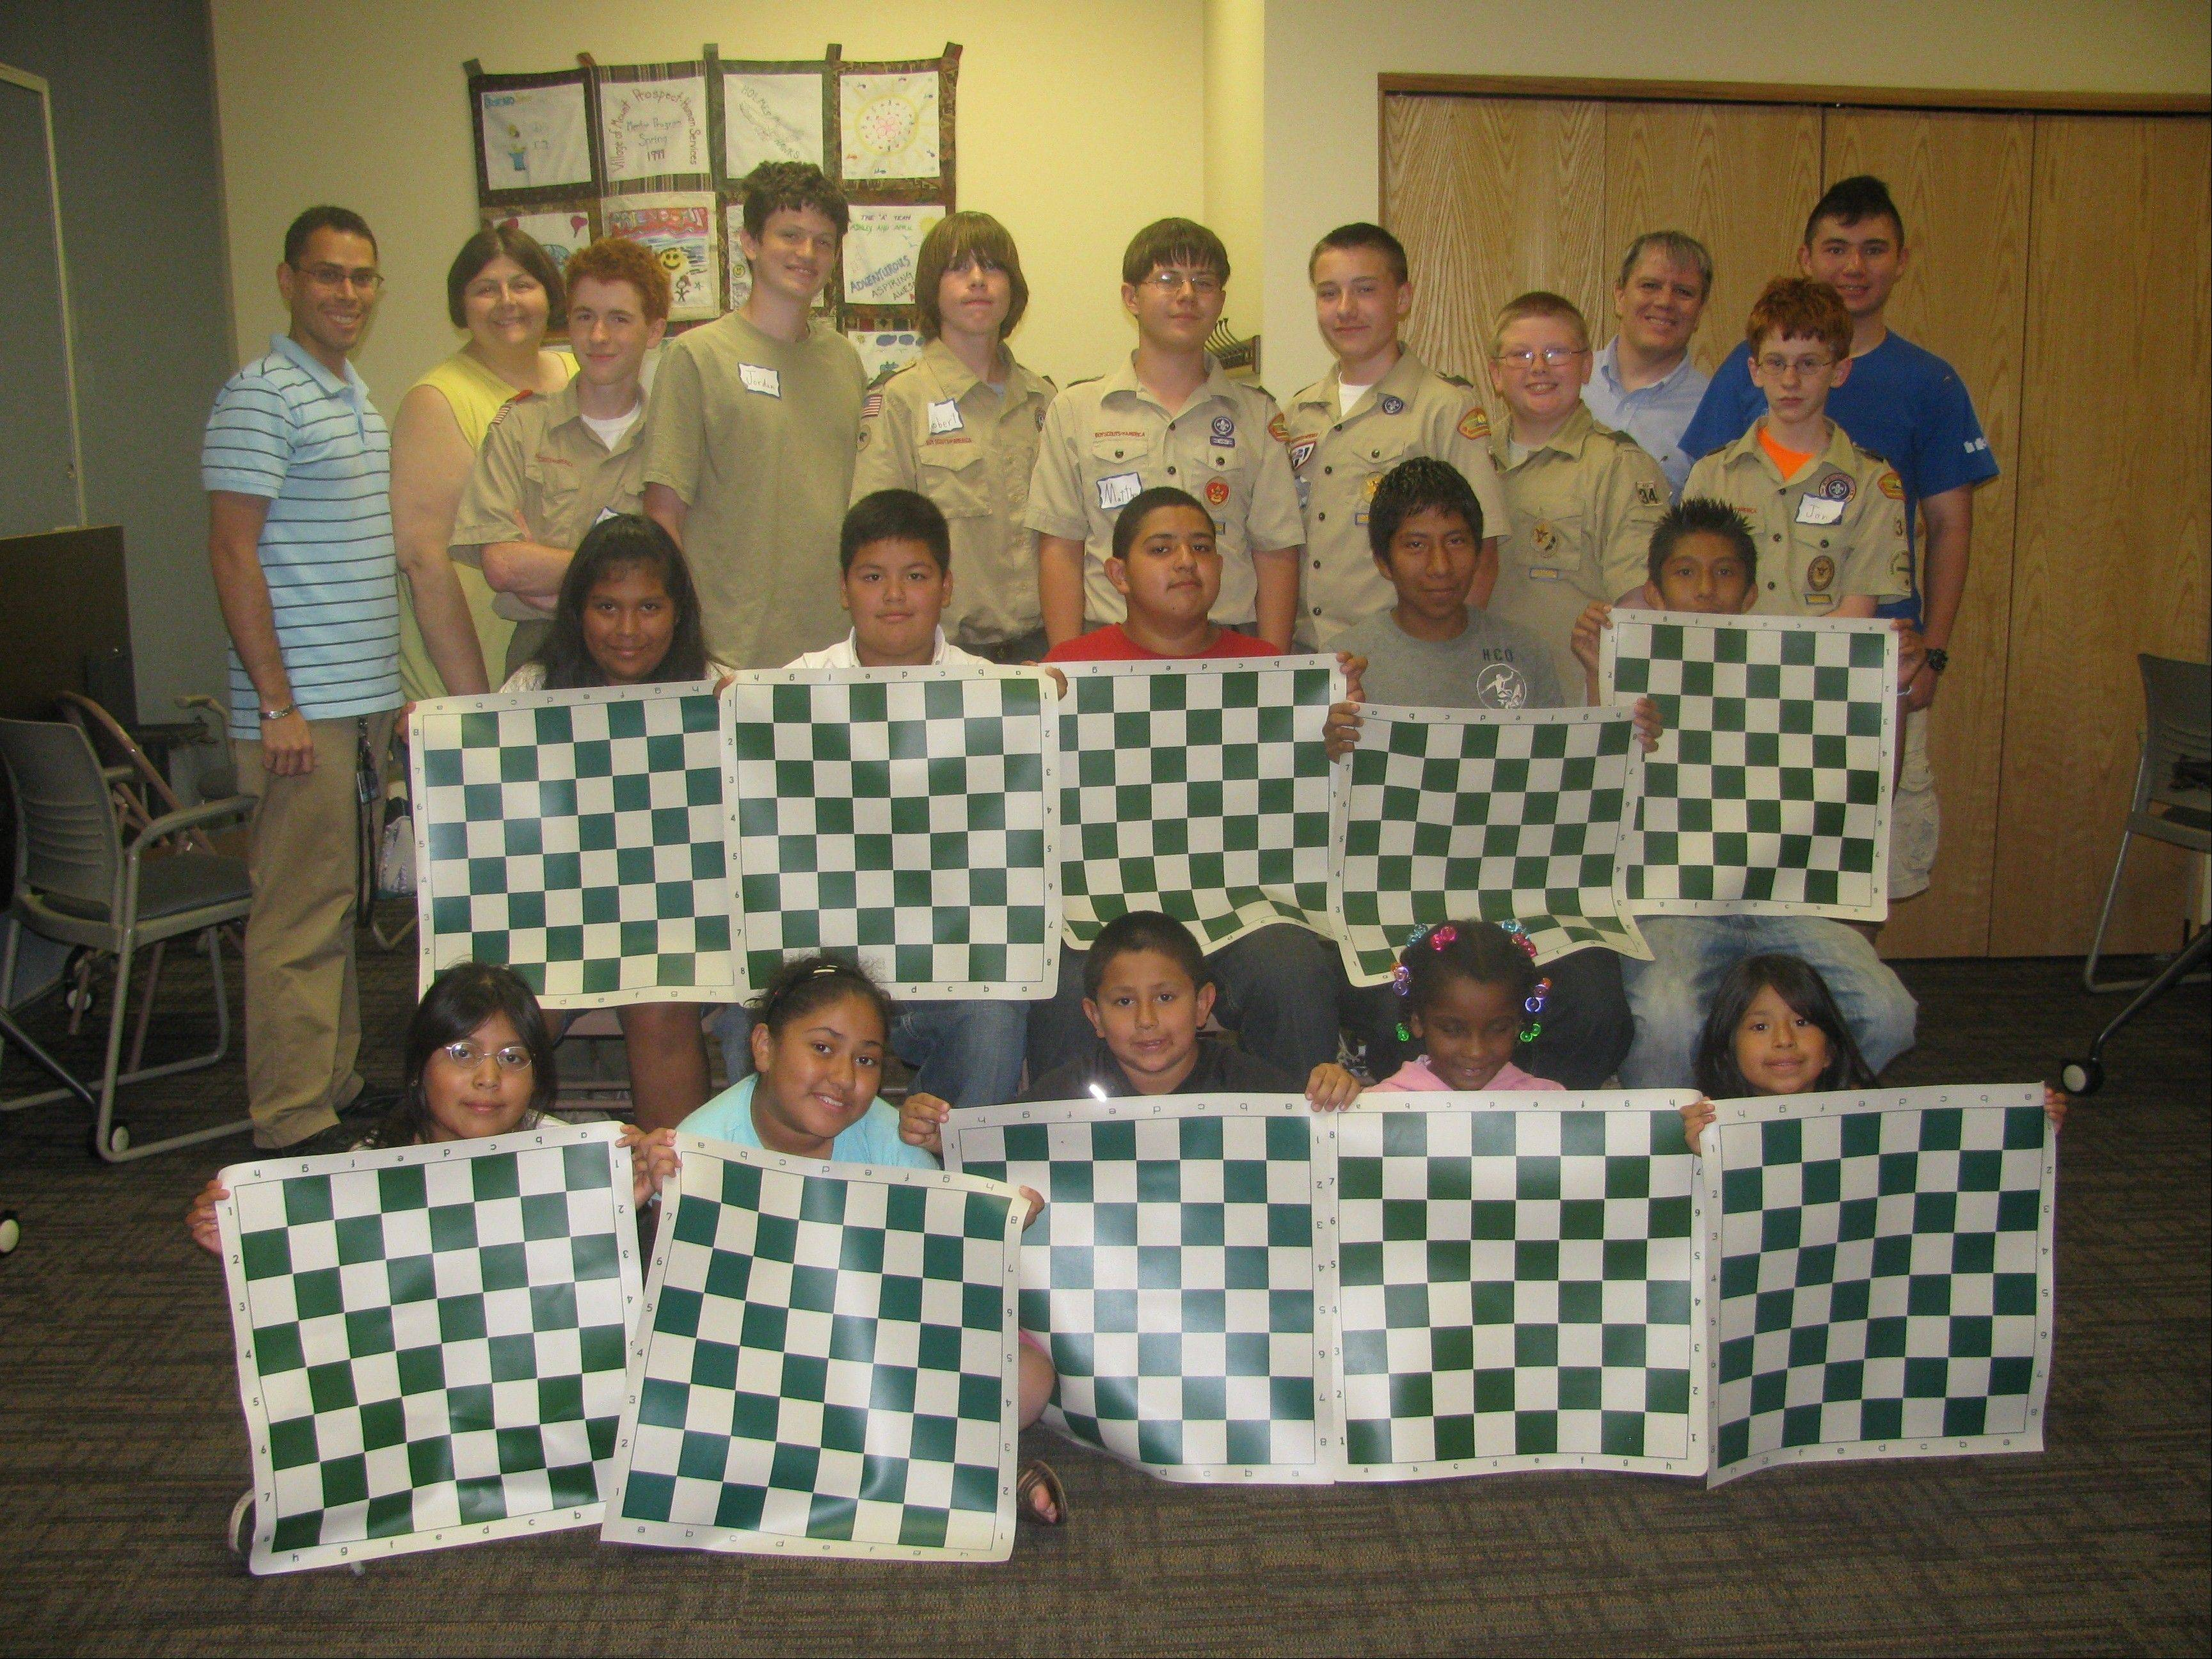 Matthew J. Wiewel's Eagle Scout Project taught 32 children how to play chess and provided them with free chess sets at the South Branch of the Mount Prospect Public Library.